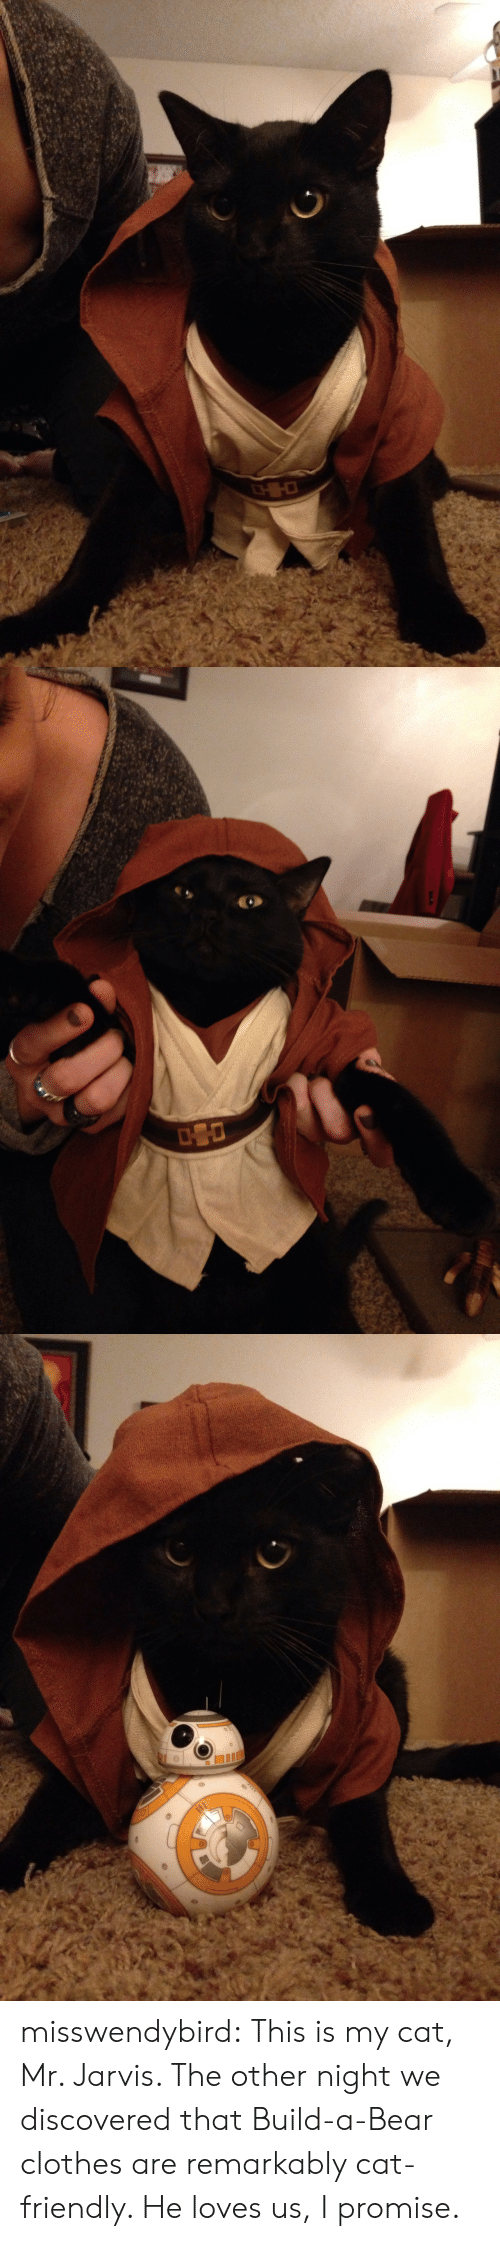 Build a Bear: misswendybird: This is my cat, Mr. Jarvis.  The other night we discovered that Build-a-Bear clothes are remarkably cat-friendly.  He loves us, I promise.